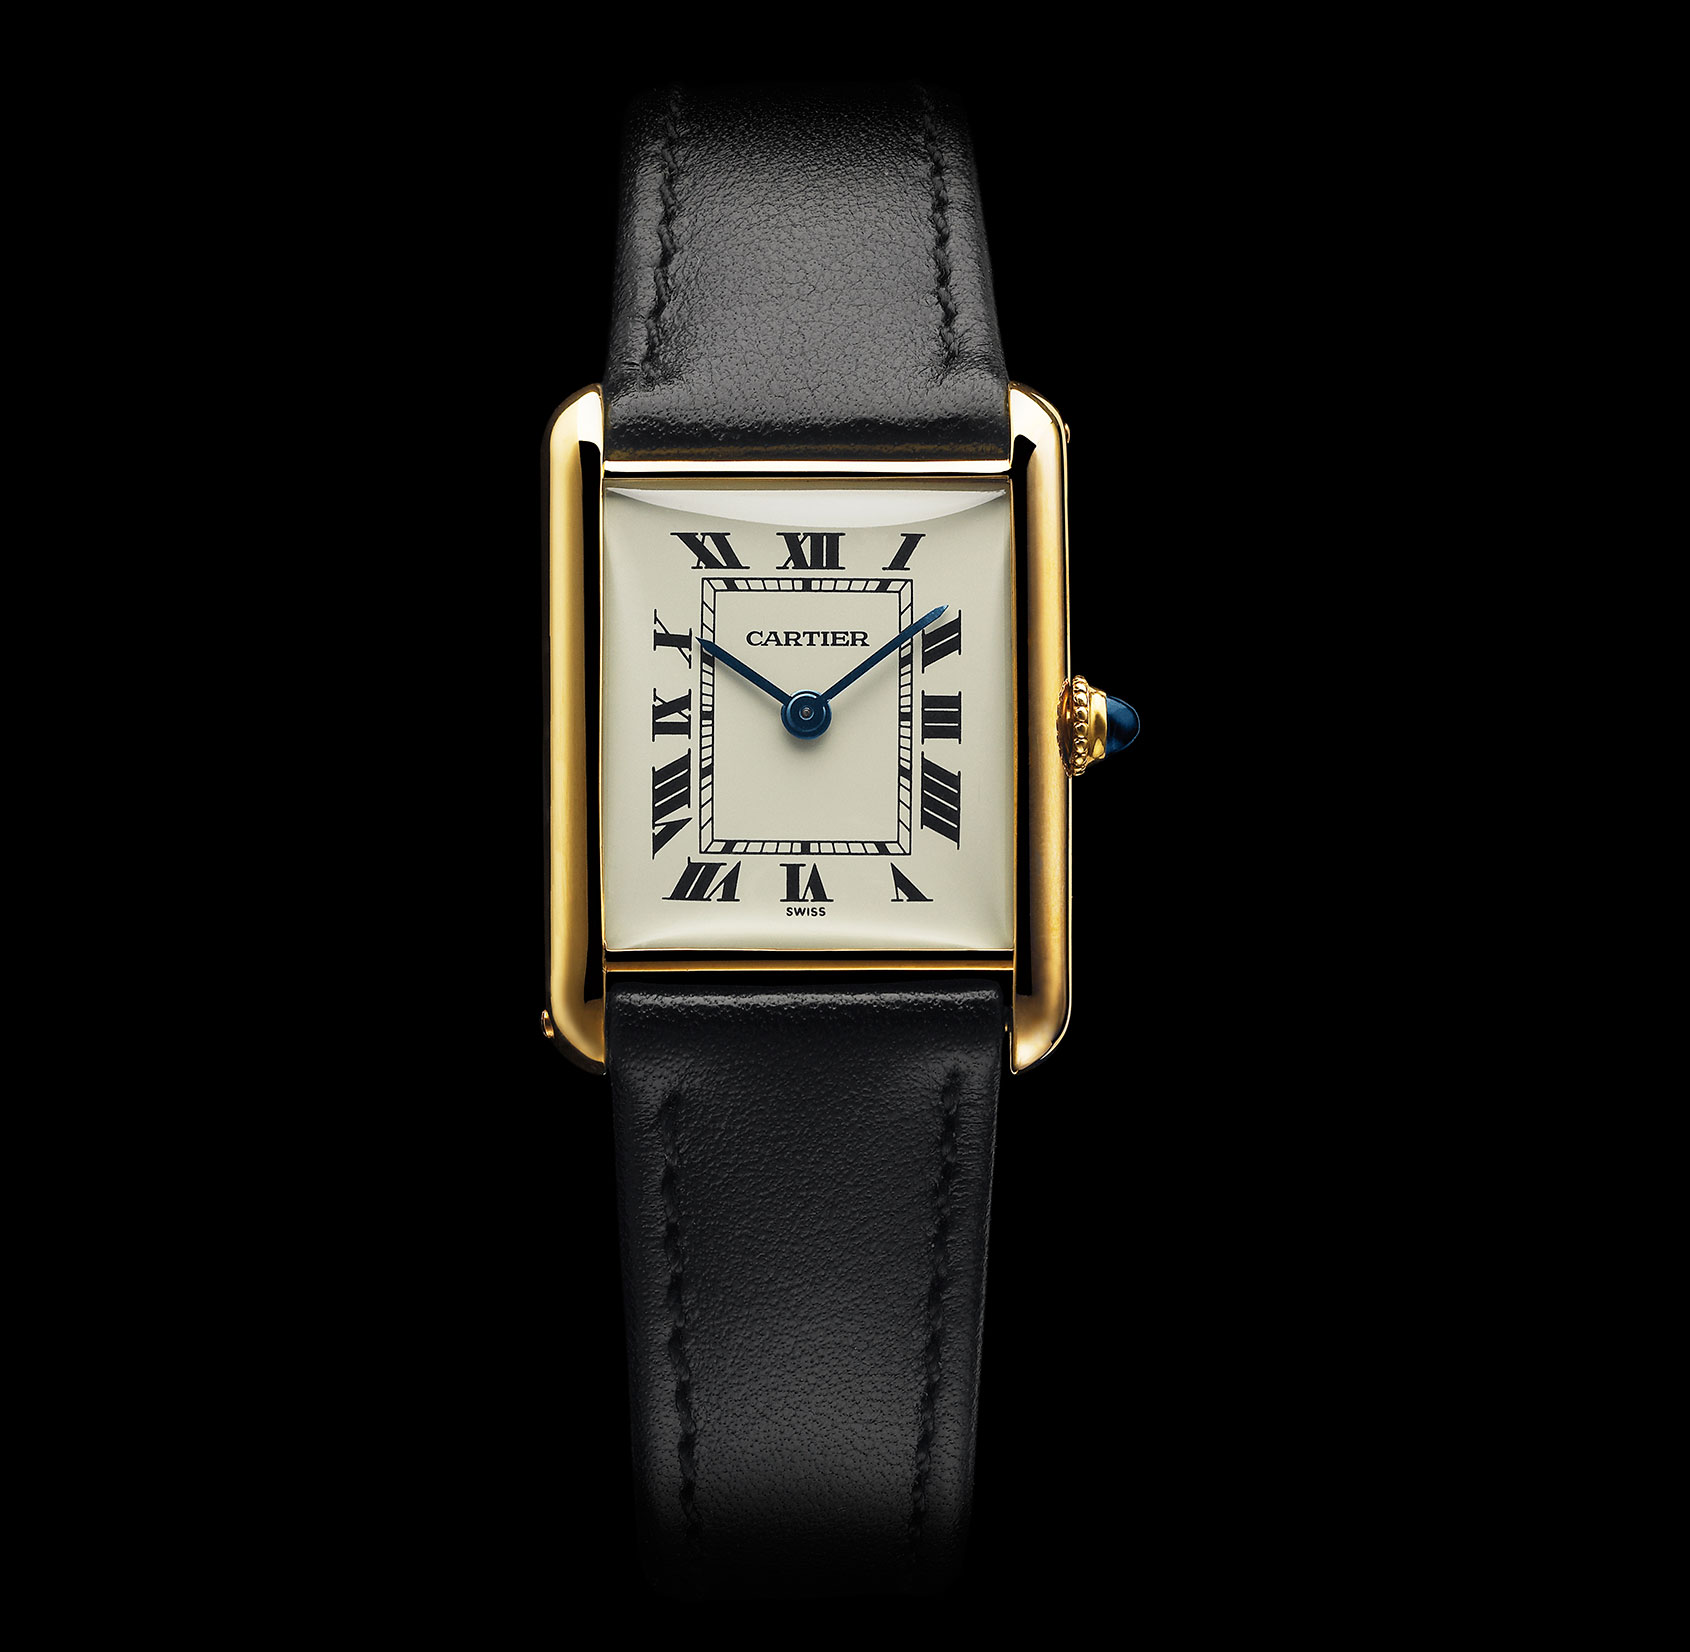 cartier tank 39 s 100 year history and the people who made it famous. Black Bedroom Furniture Sets. Home Design Ideas